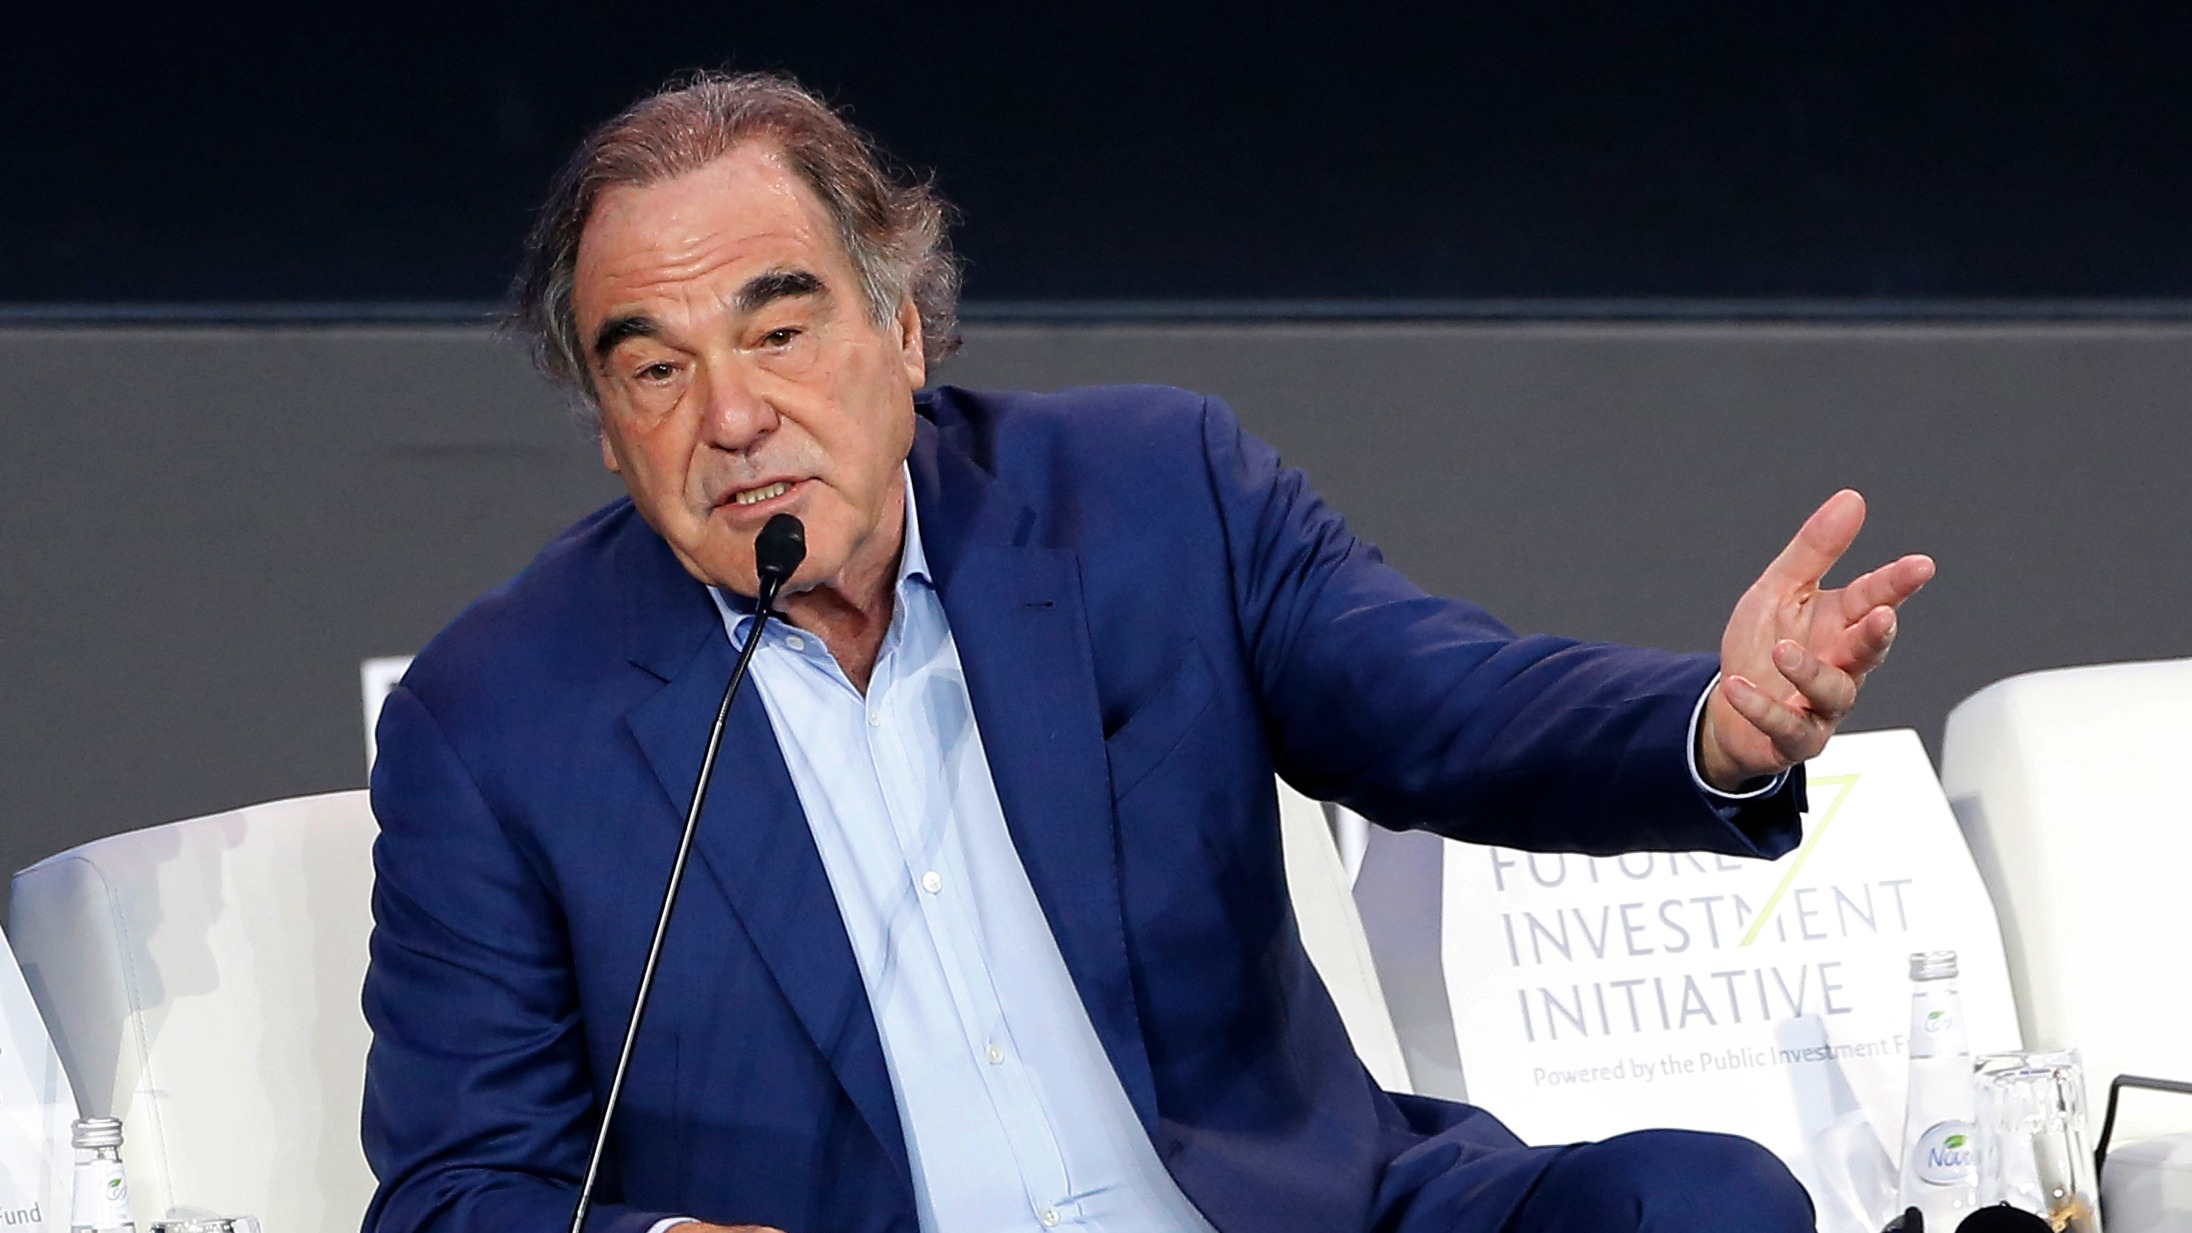 Oliver Stone on Trump: 'There is something vastly wrong with his ego' | ITV News